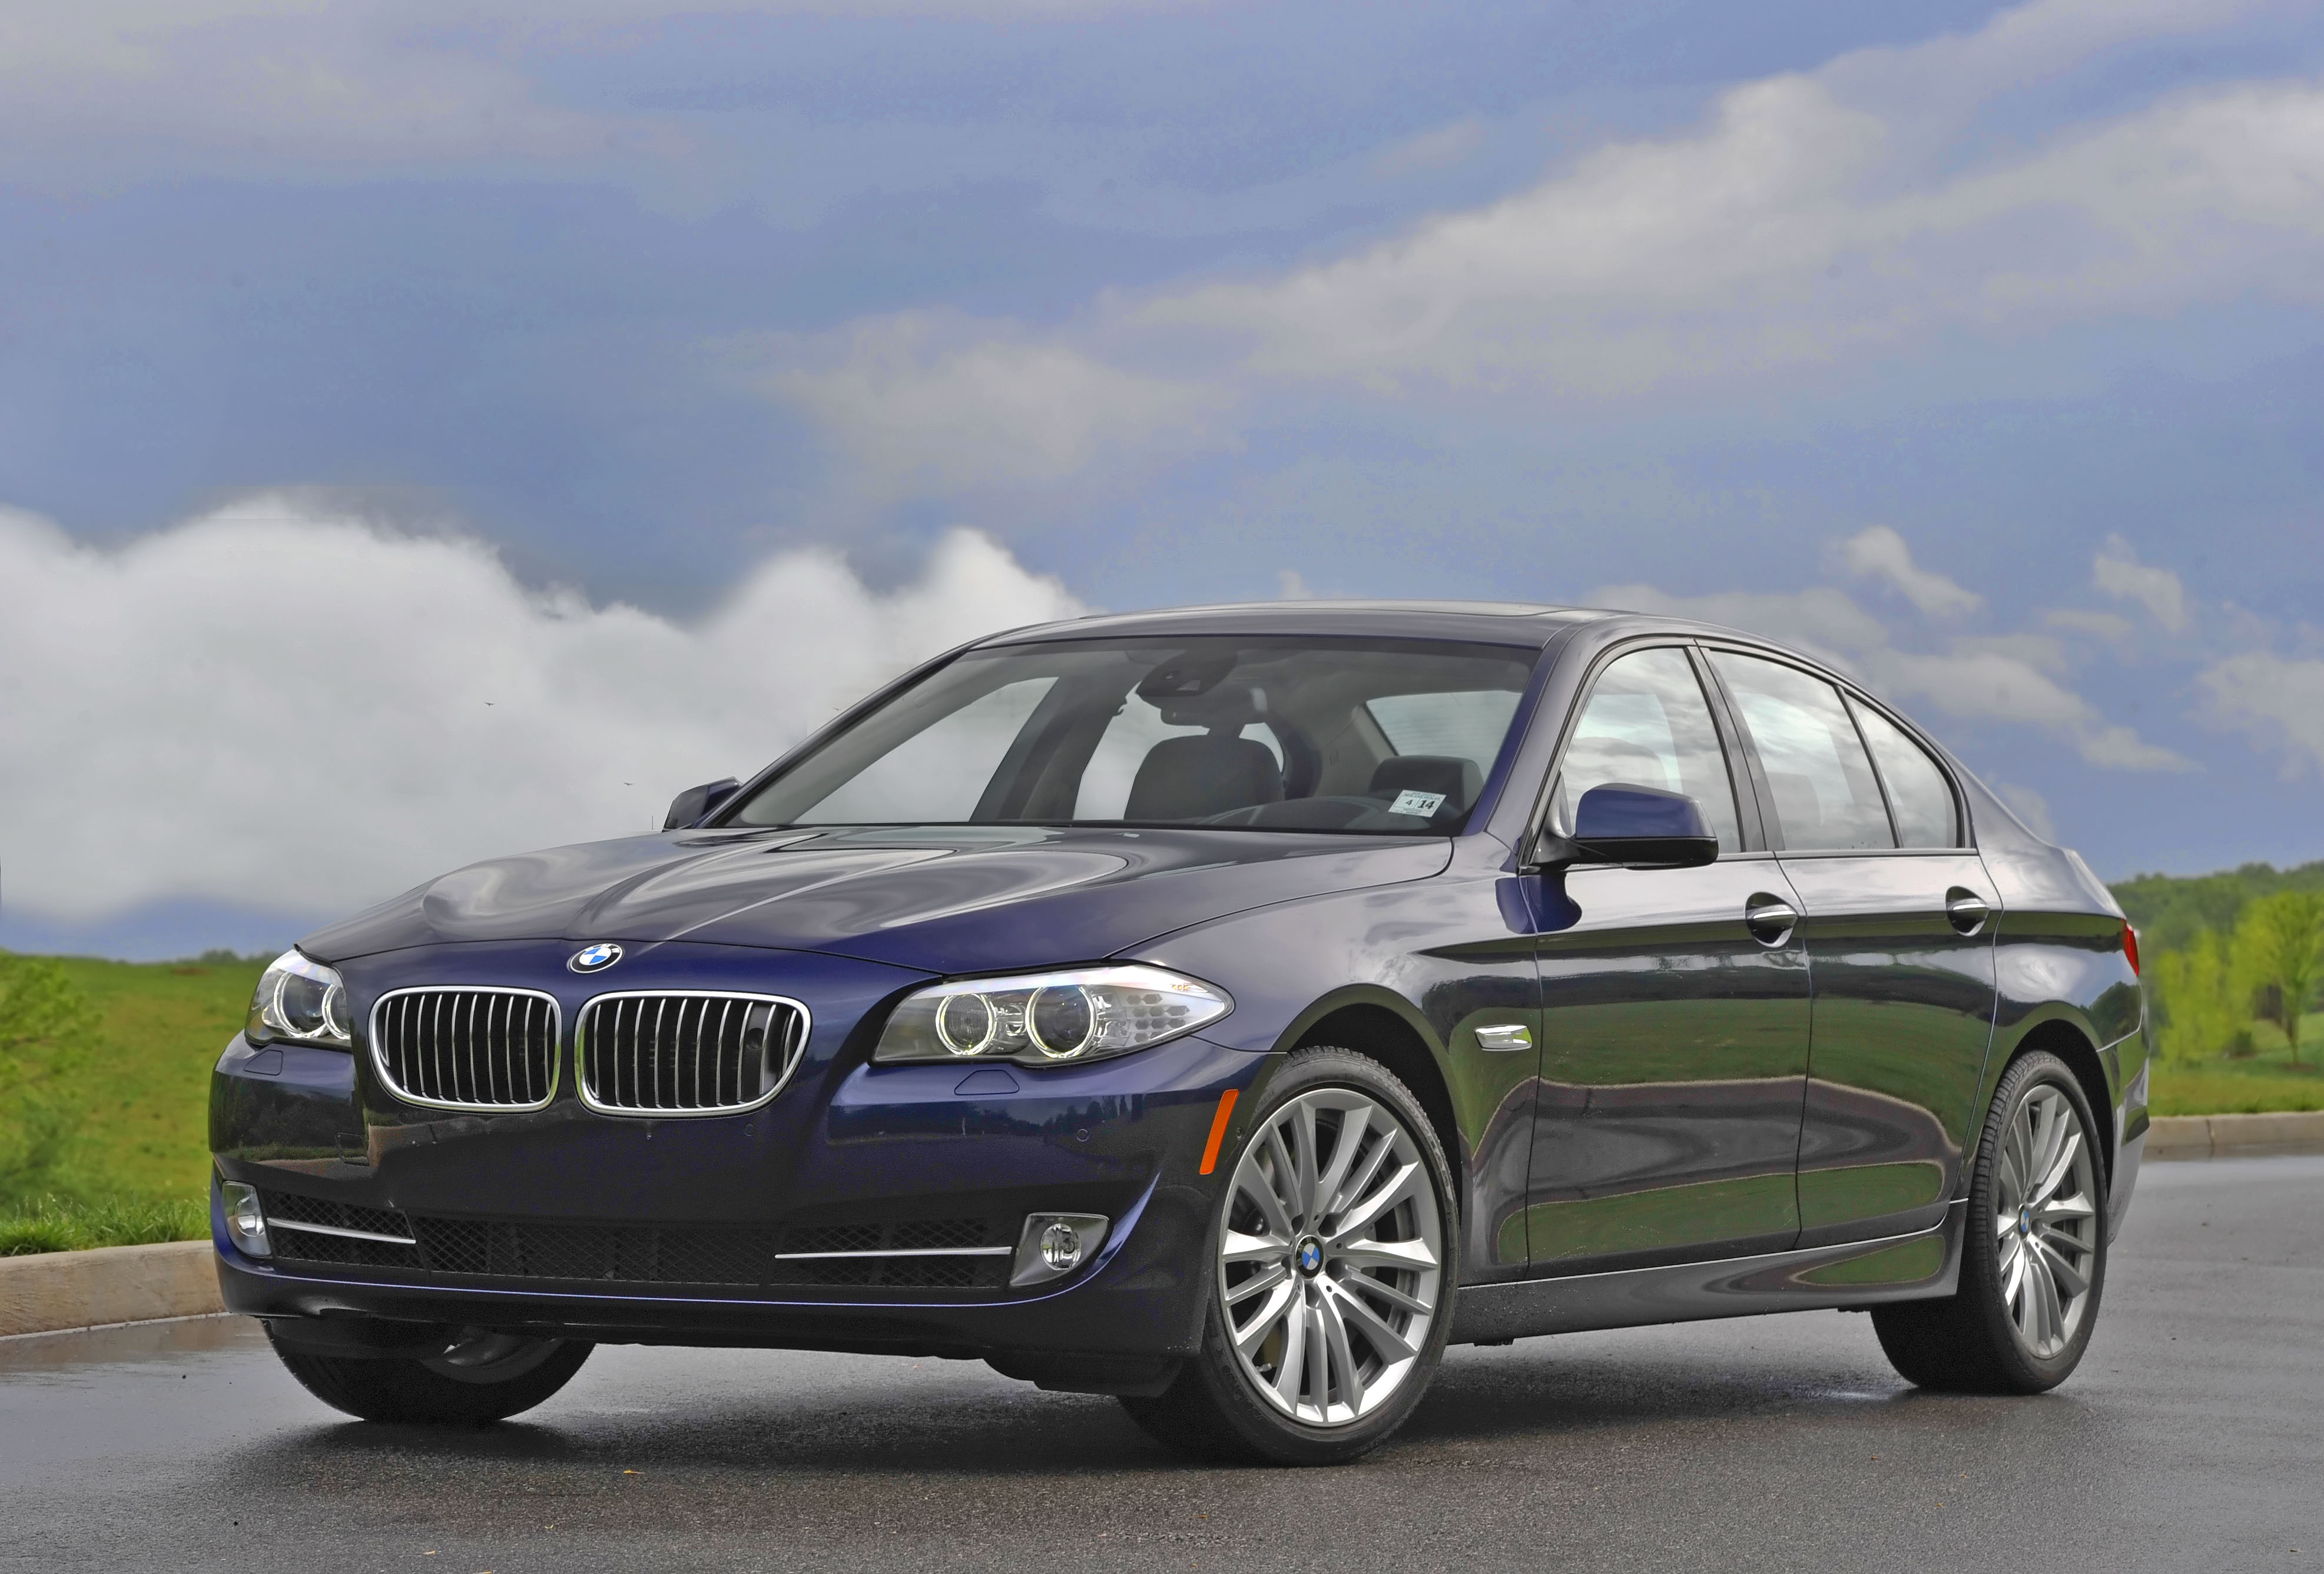 2013 Bmw 5 Series Review Ratings Specs Prices And Photos The Car Connection